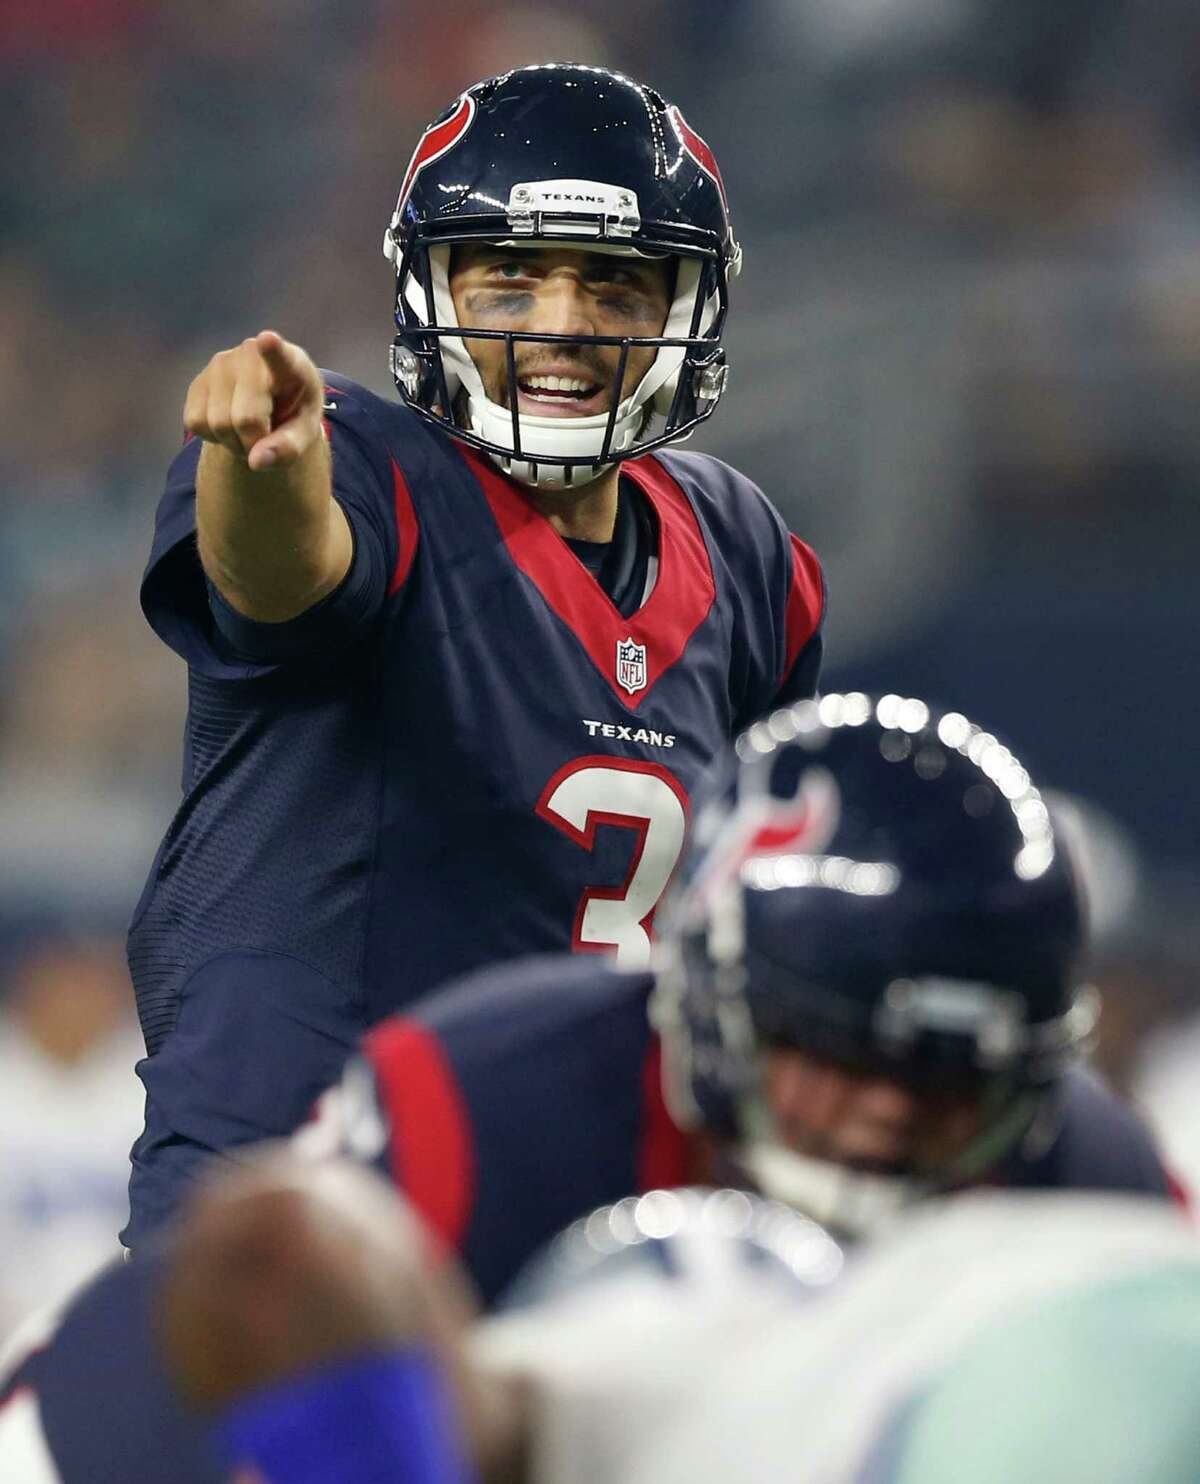 Quarterbacks Tom Savage played a solid game and concluded a terrific season. A touchdown pass to Akeem Hunt and no interceptions. Brandon Weeden threw a 64-yard touchdown pass. If not for his pick-six the grade would have been an A. Grade: B